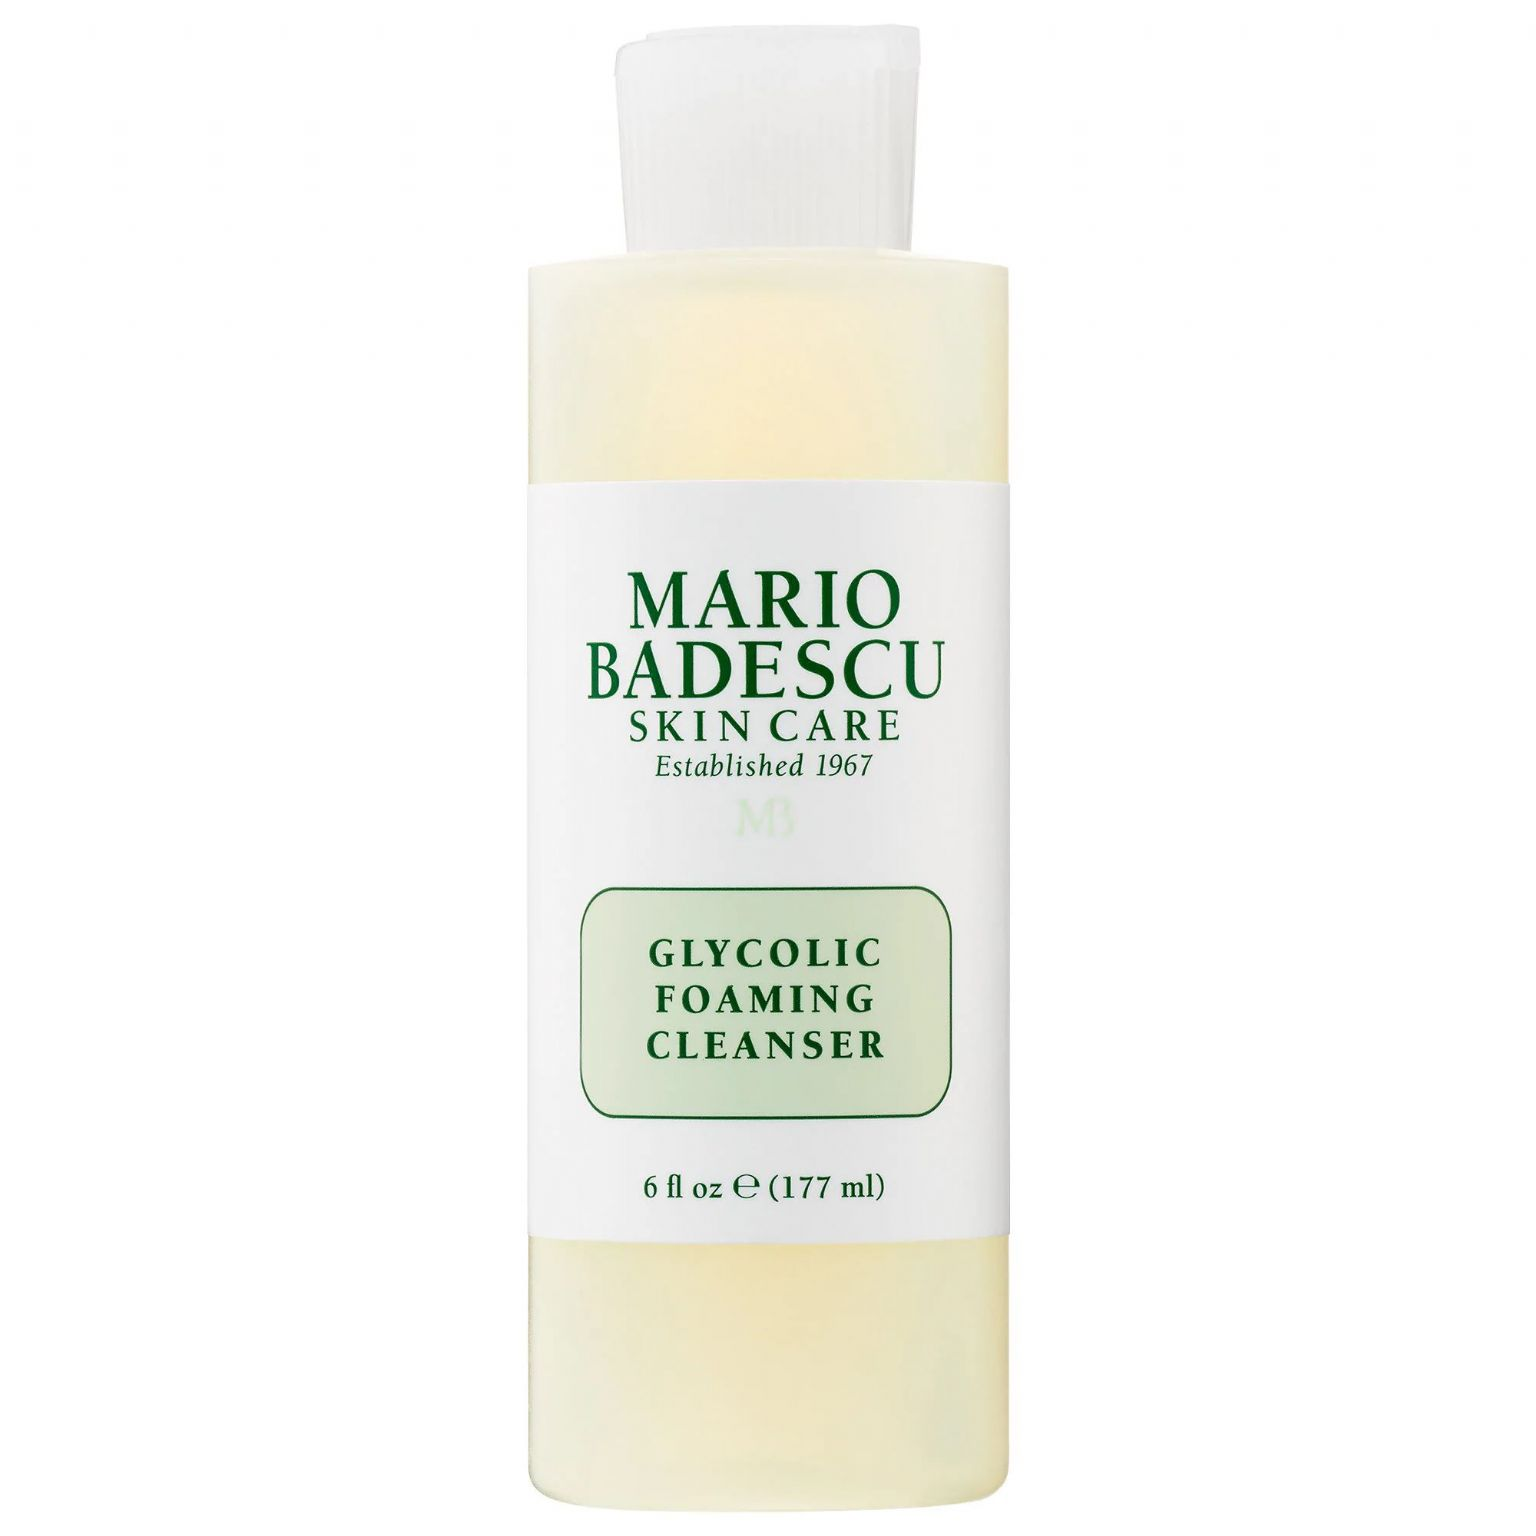 mario badescu glycolic foaming cleanser review